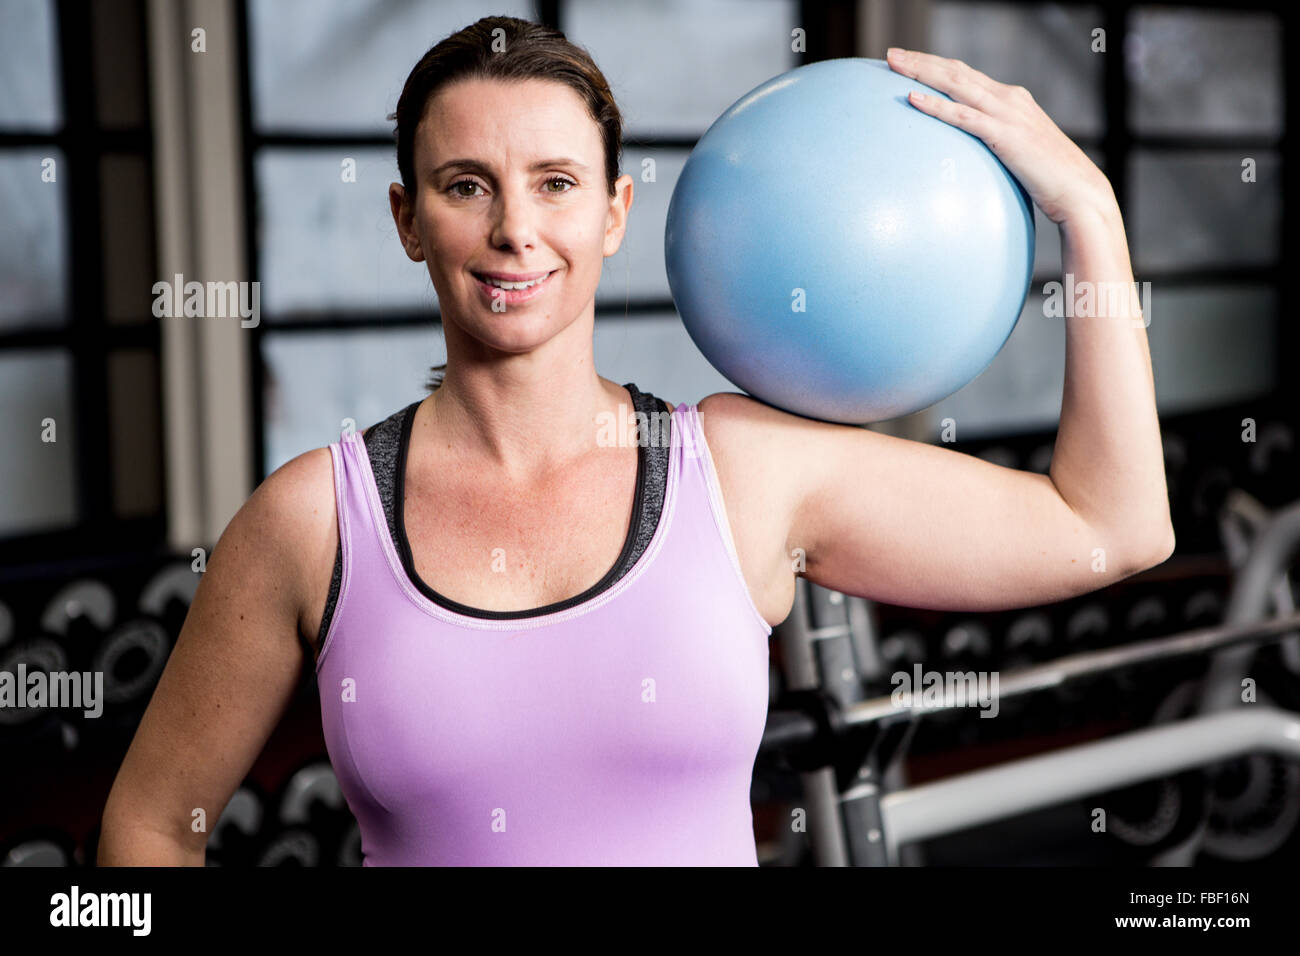 Pregnant woman holding exercise ball - Stock Image